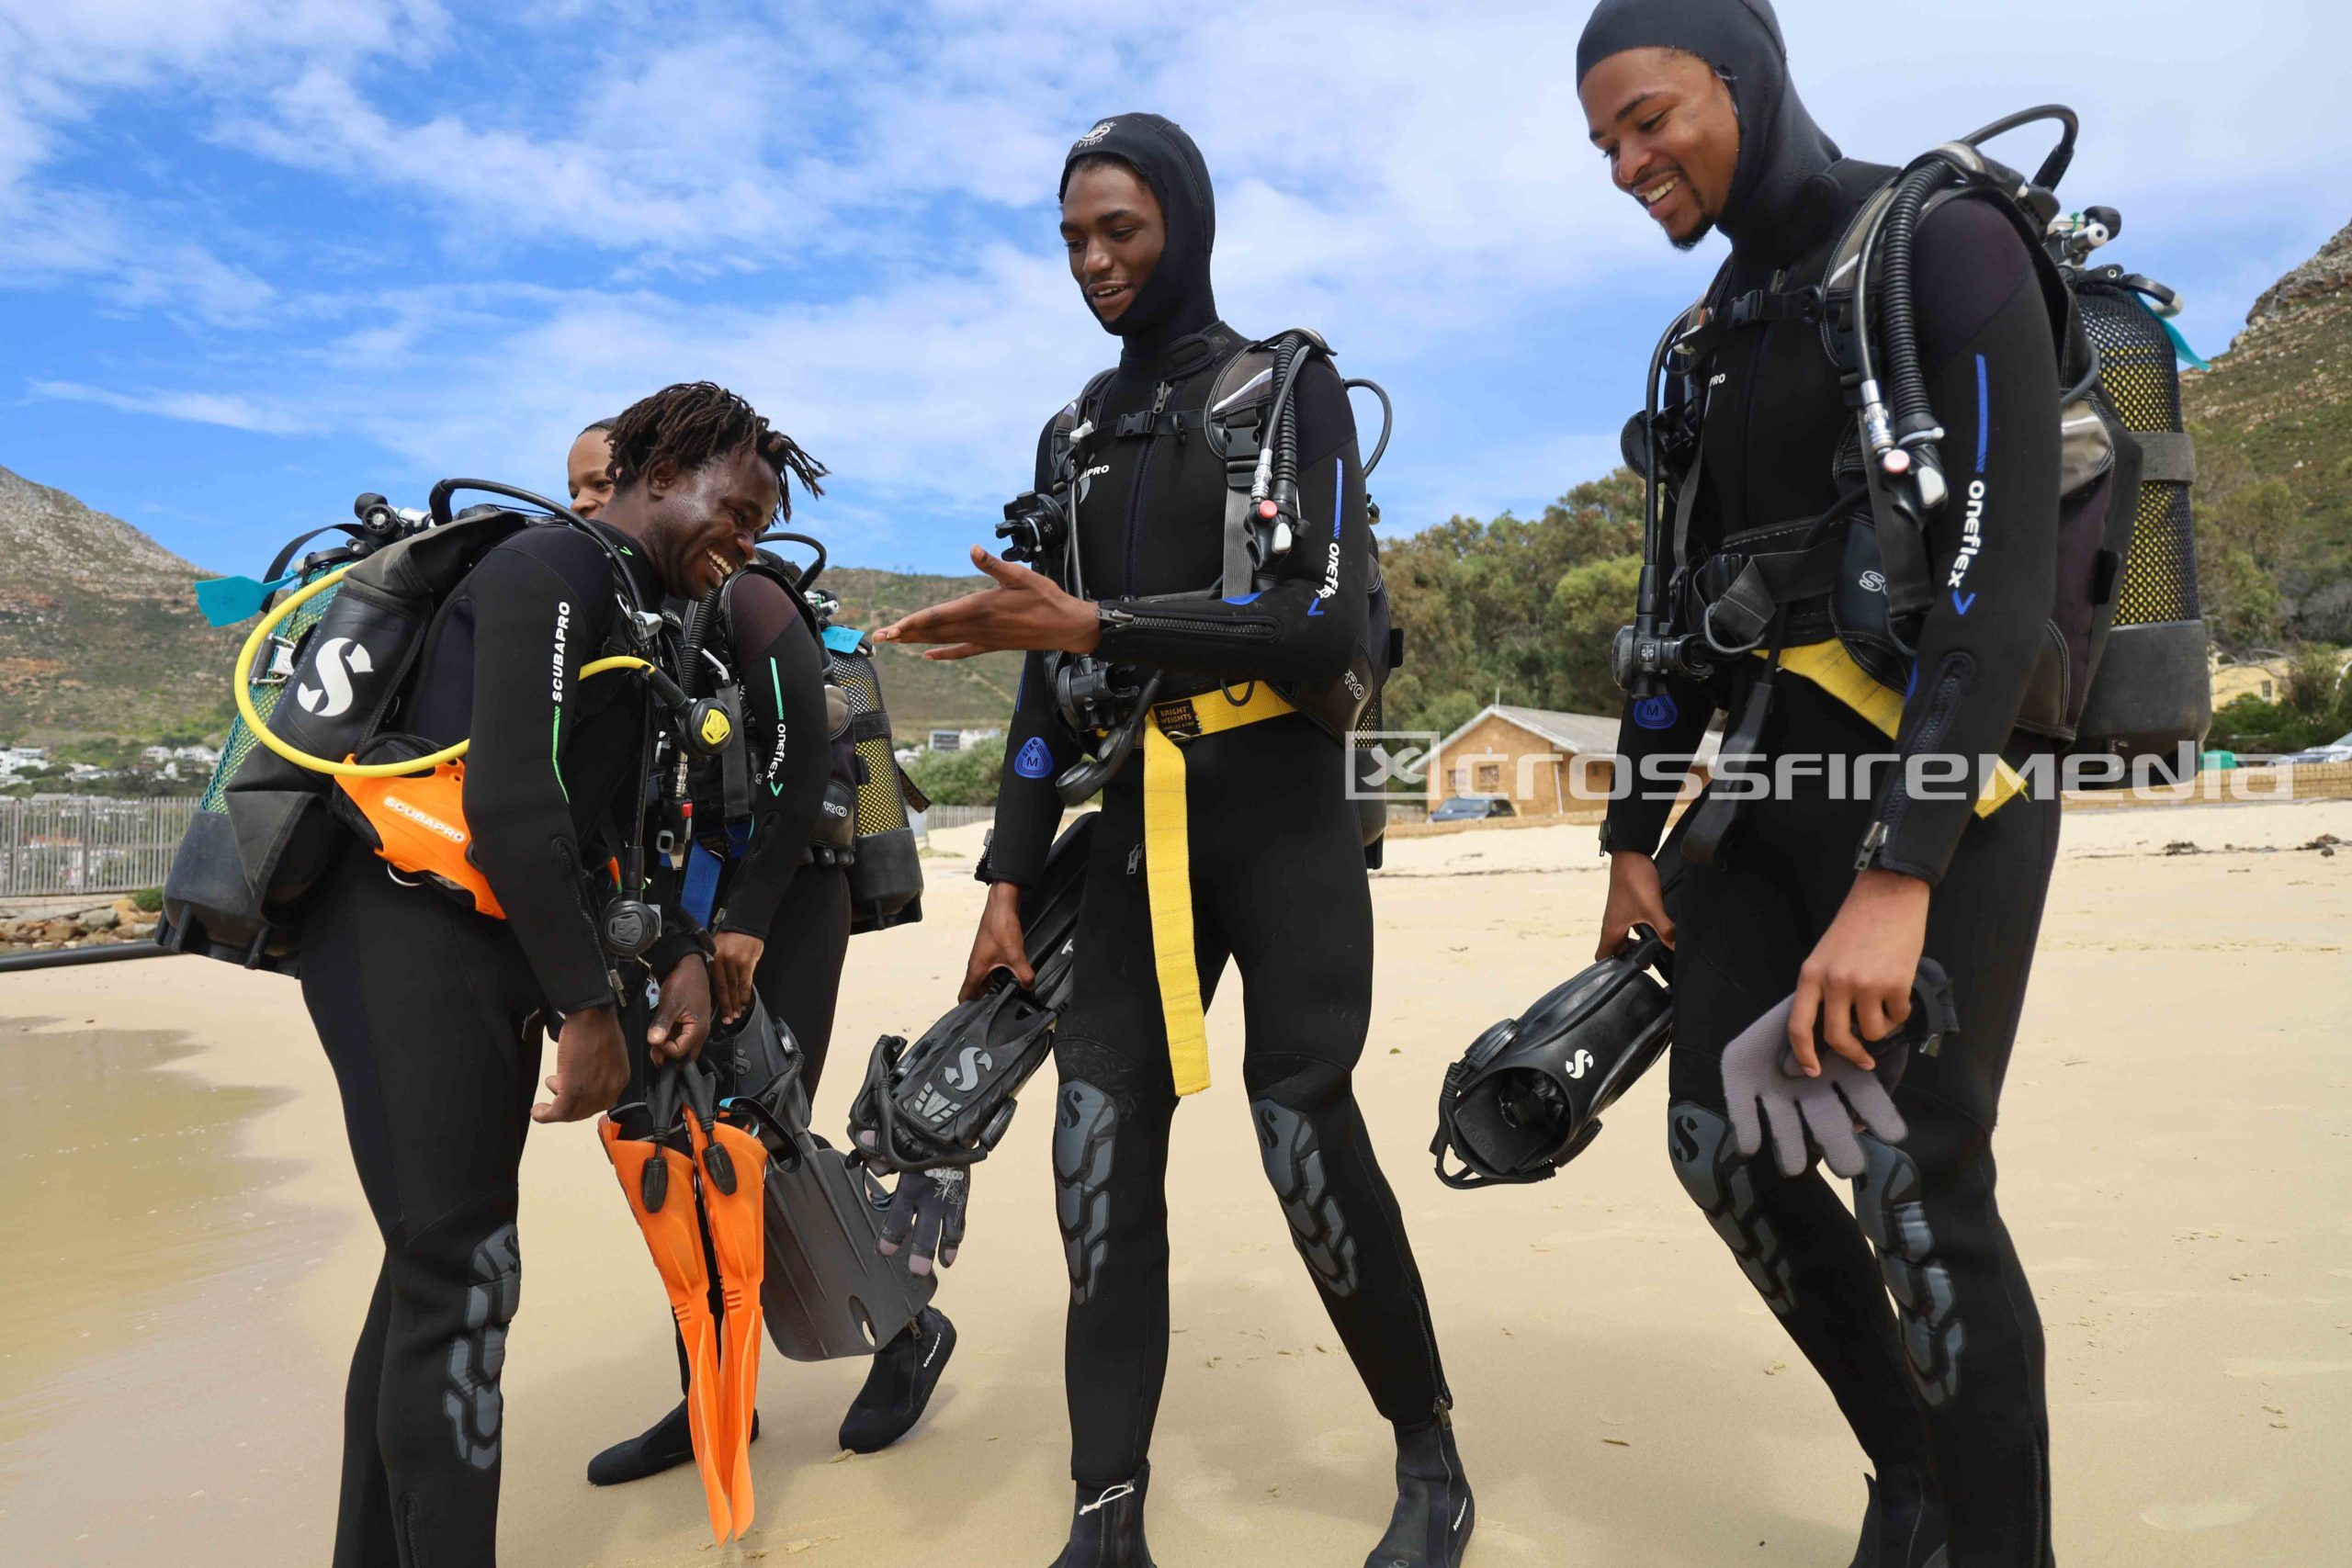 product image of scuba divers on a beach